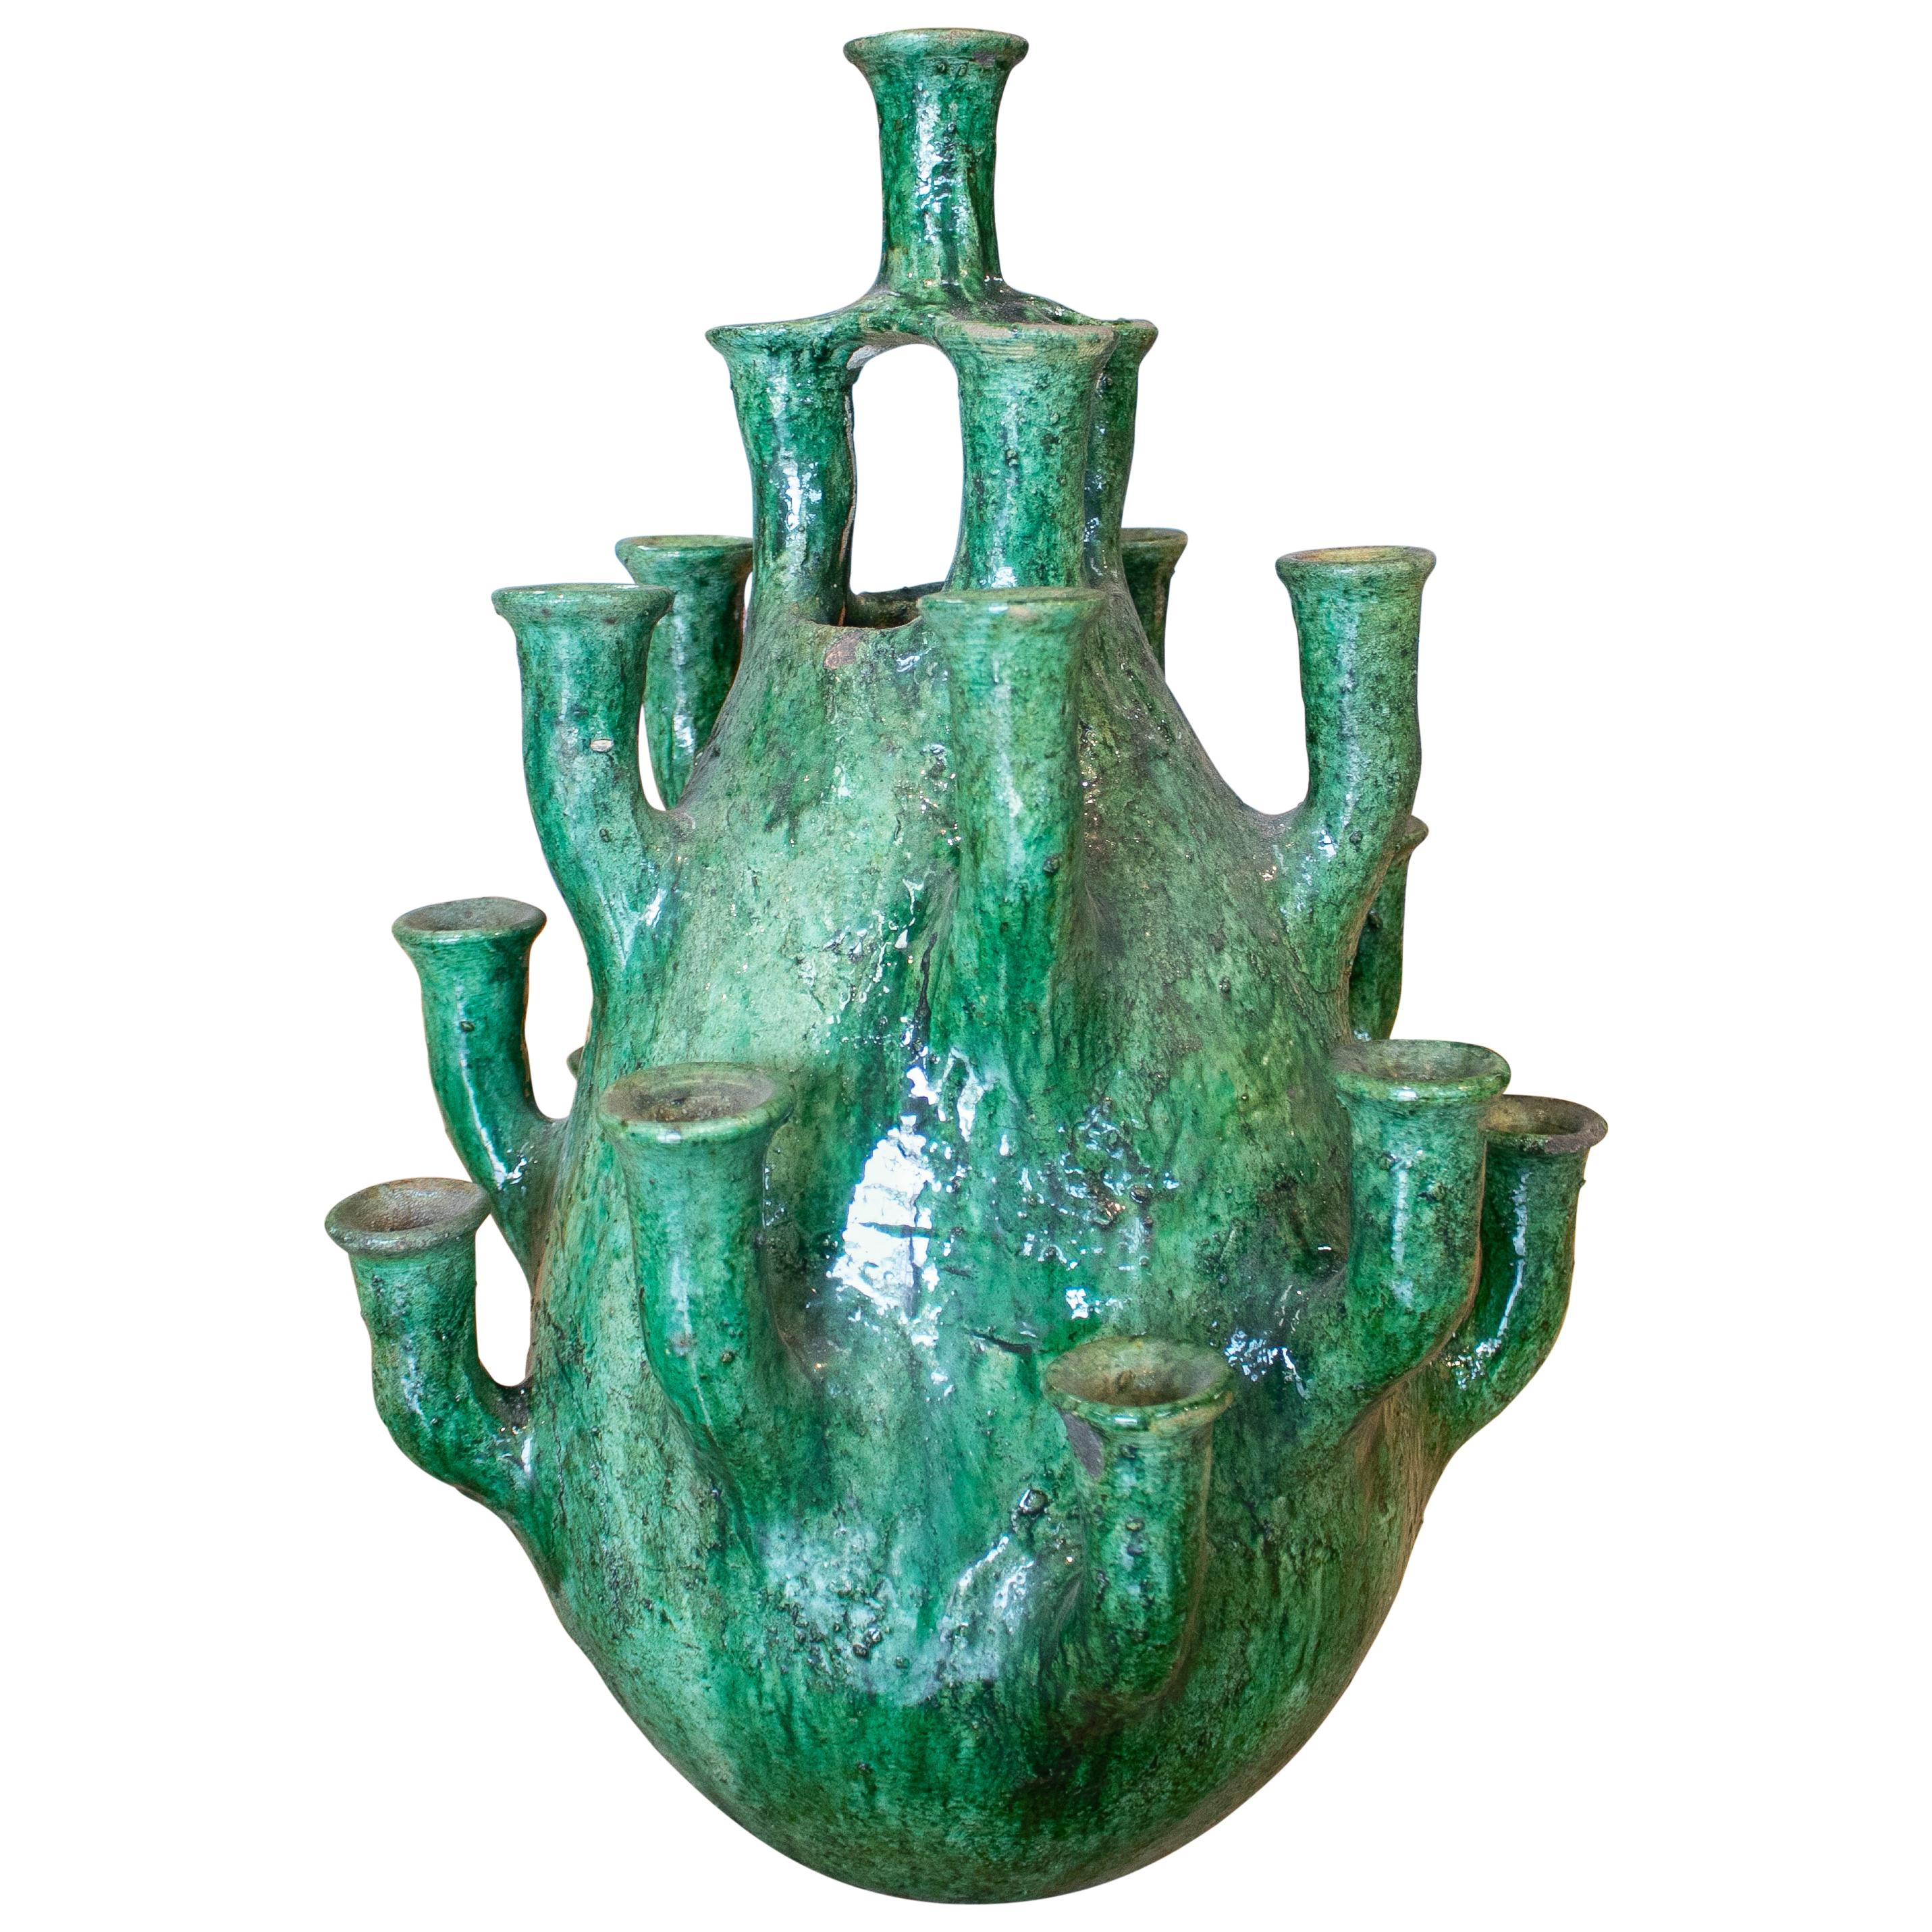 1990s Spanish Green Glazed Table Candle Holder